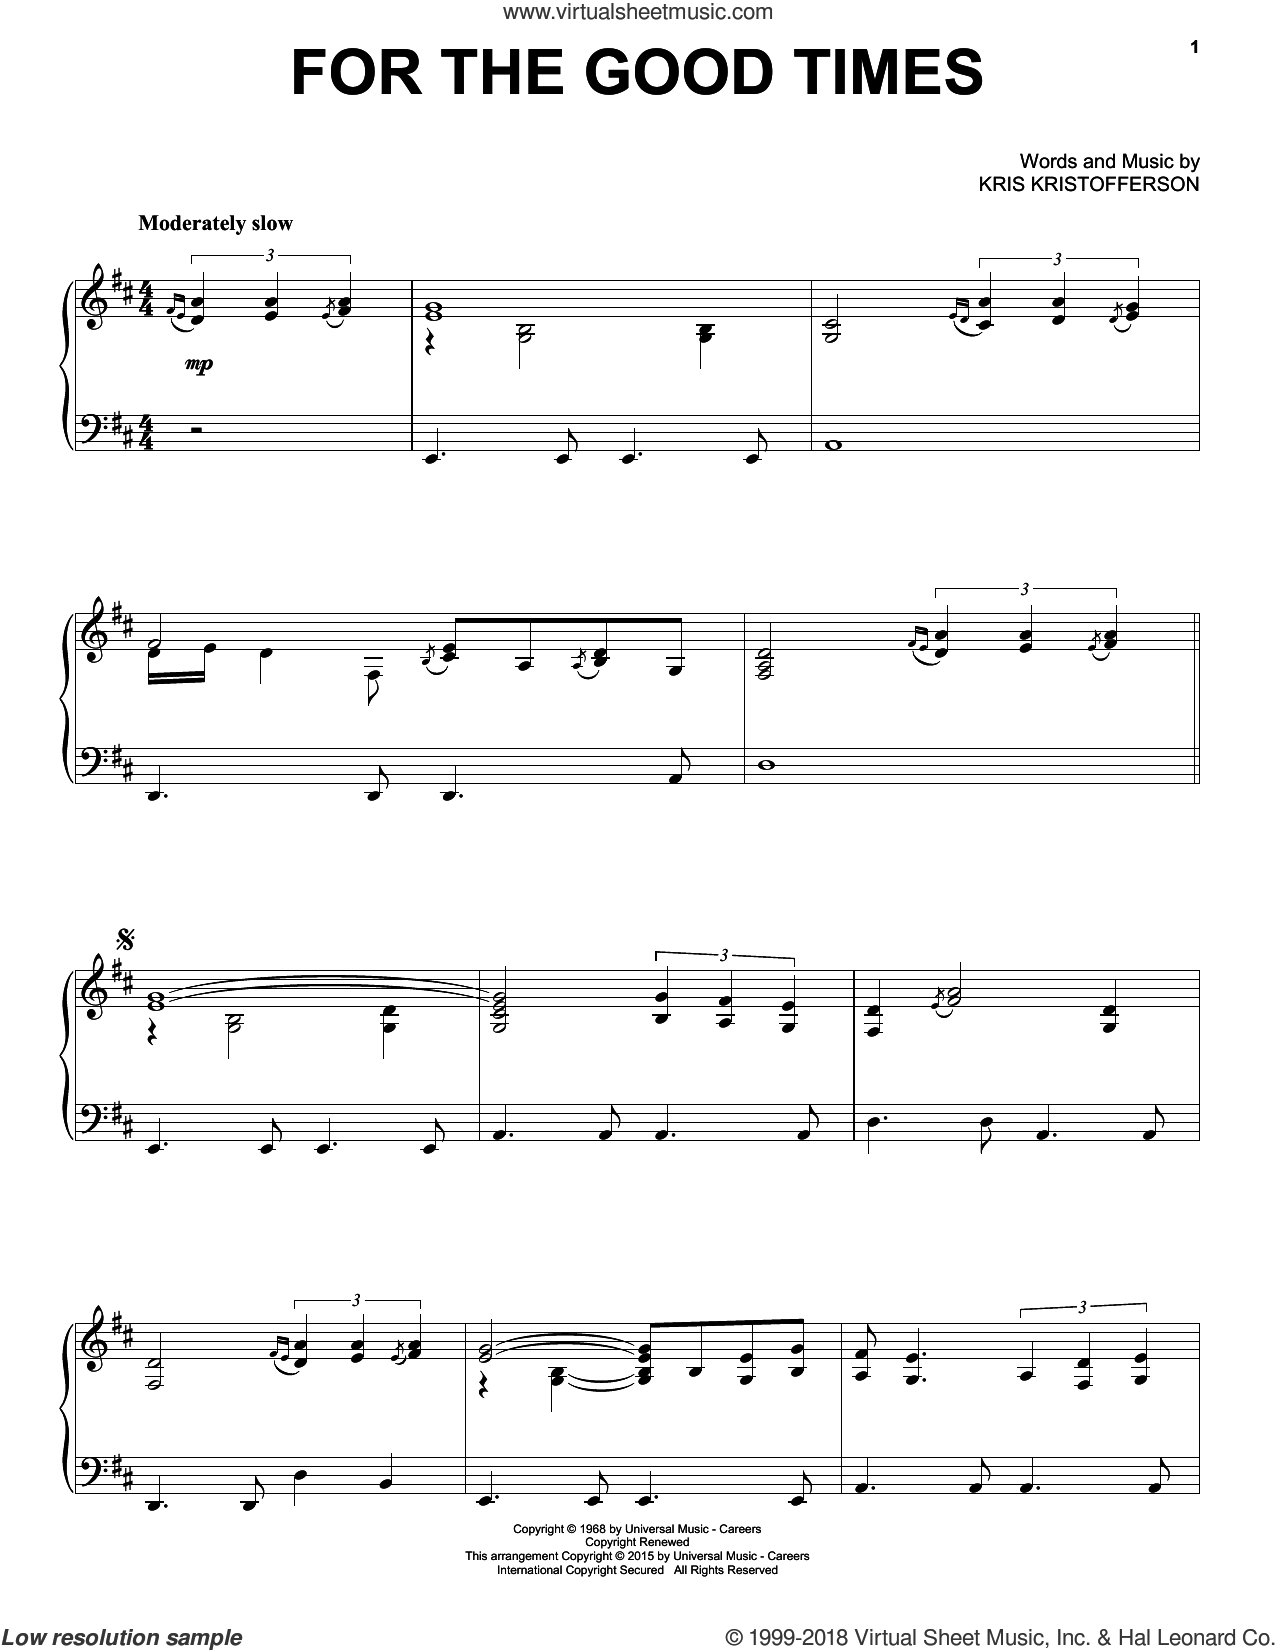 For The Good Times sheet music for piano solo by Kris Kristofferson, Elvis Presley and Ray Price, intermediate skill level